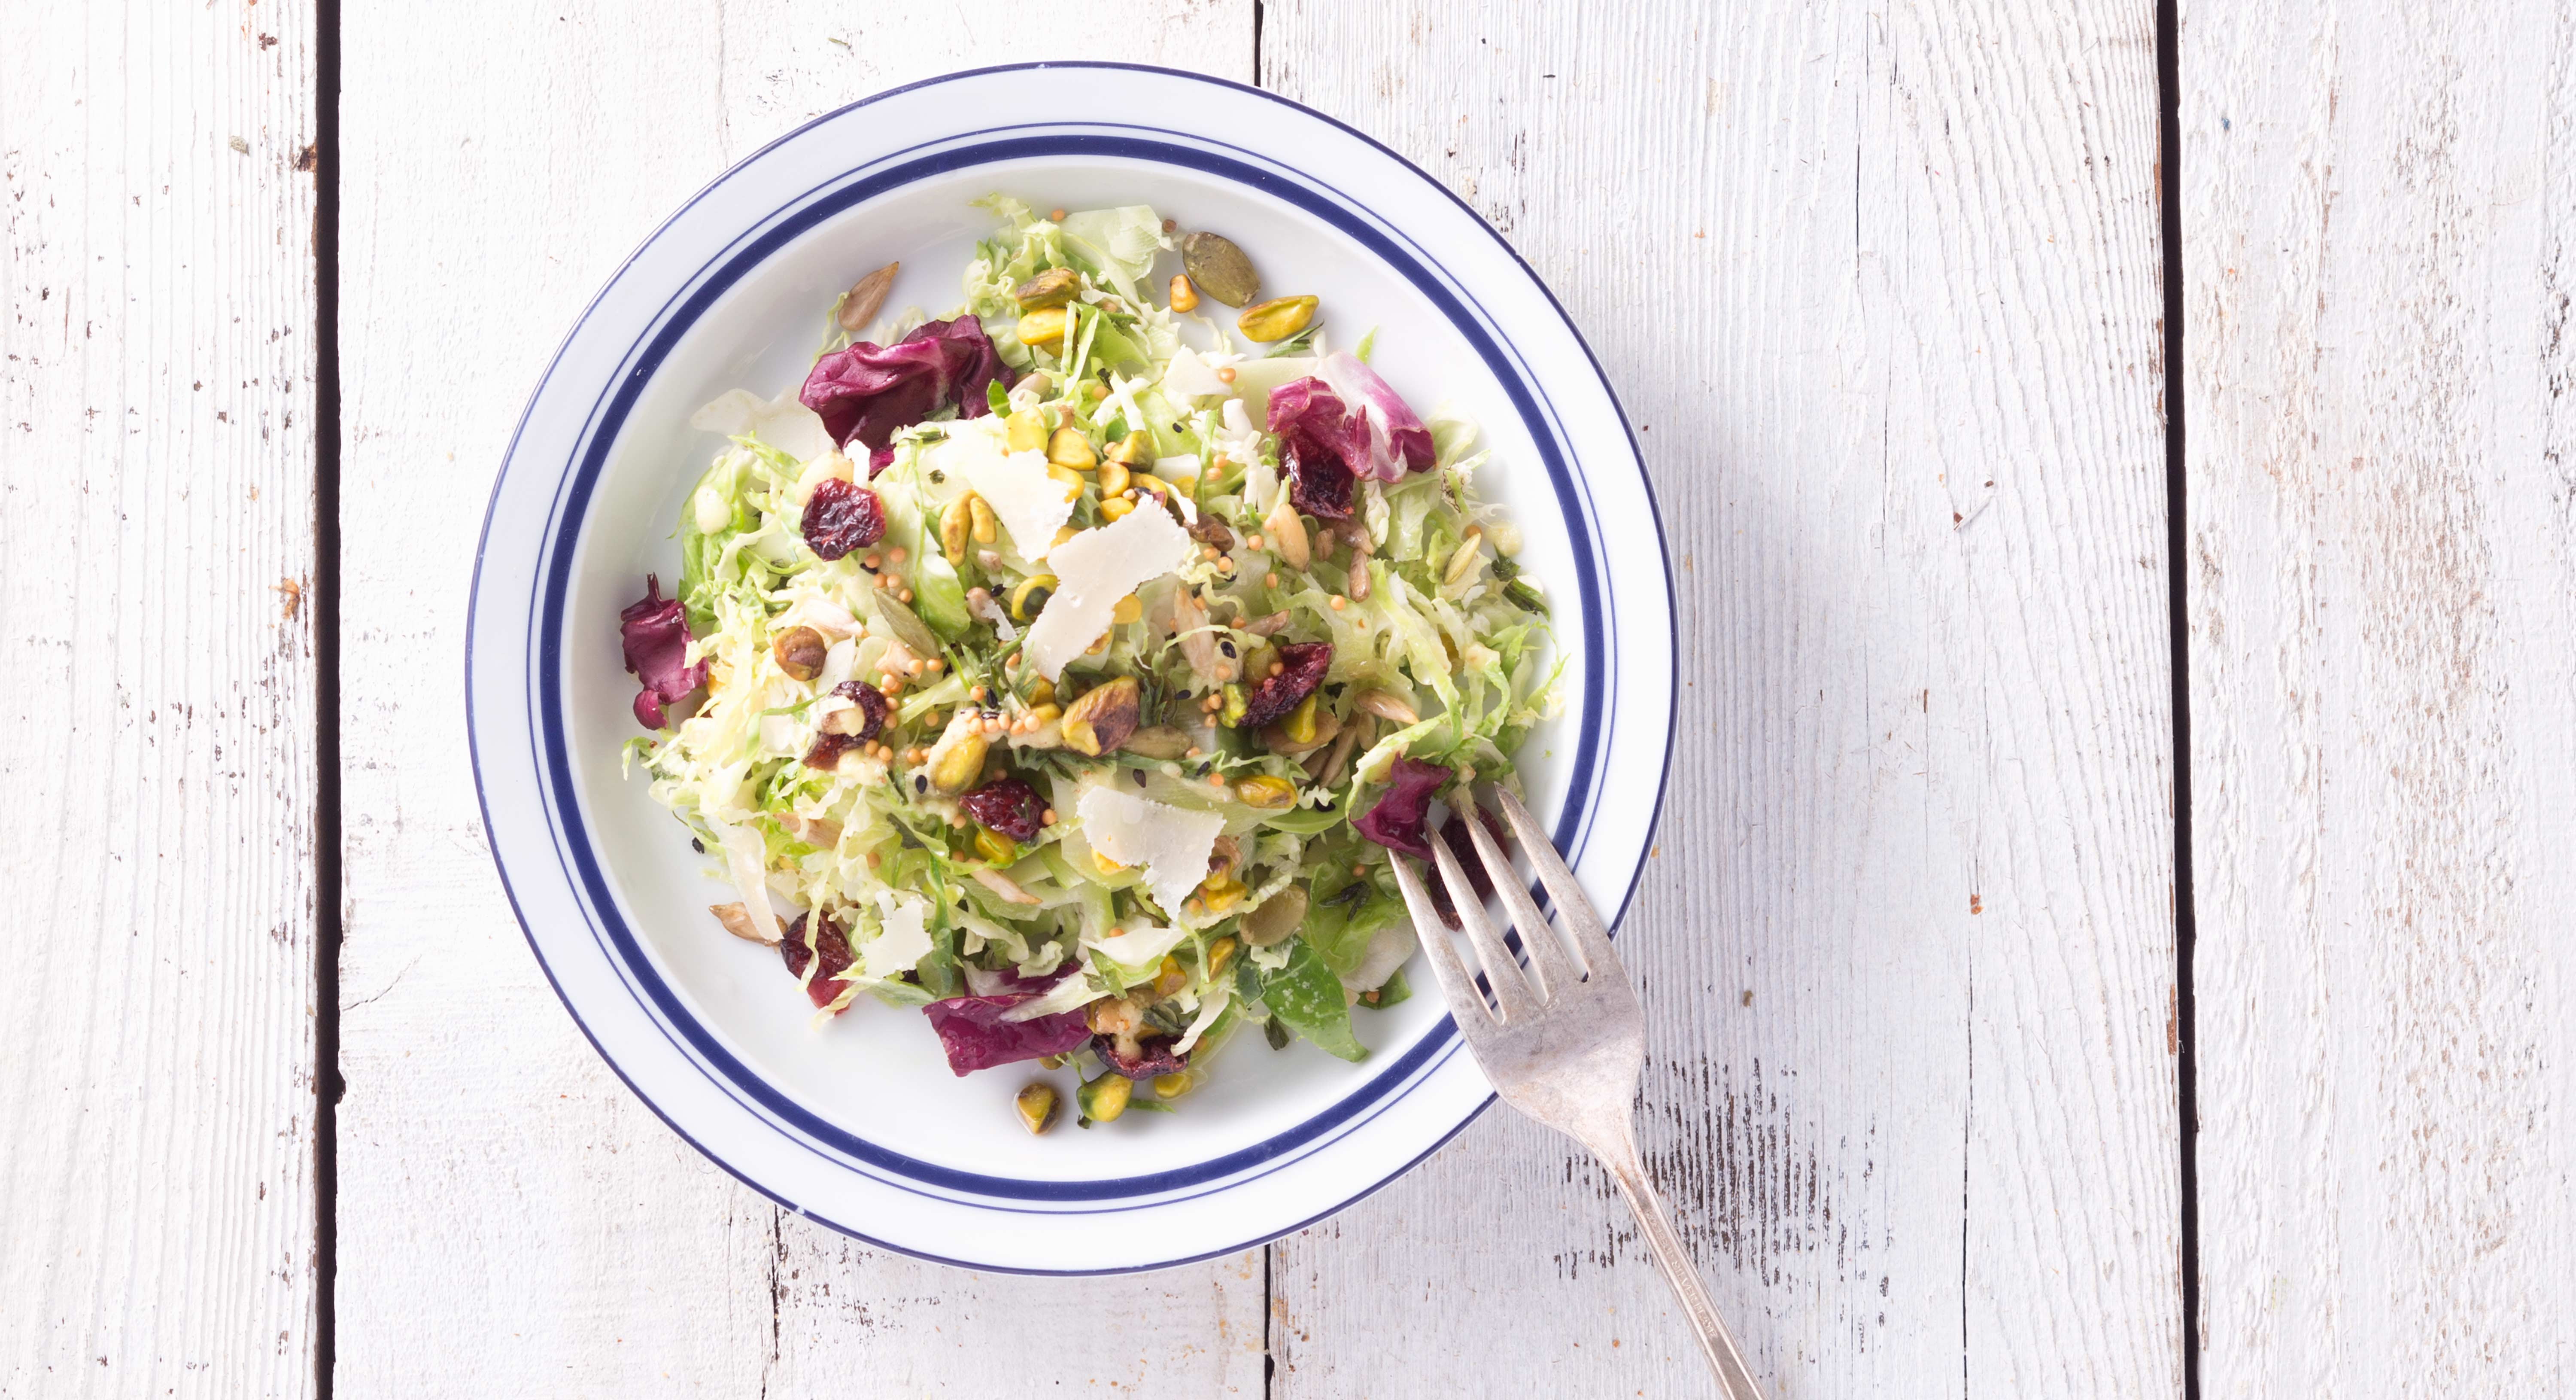 This Crunchy Brussels Sprouts Slaw Is the Ultimate Winter Salad